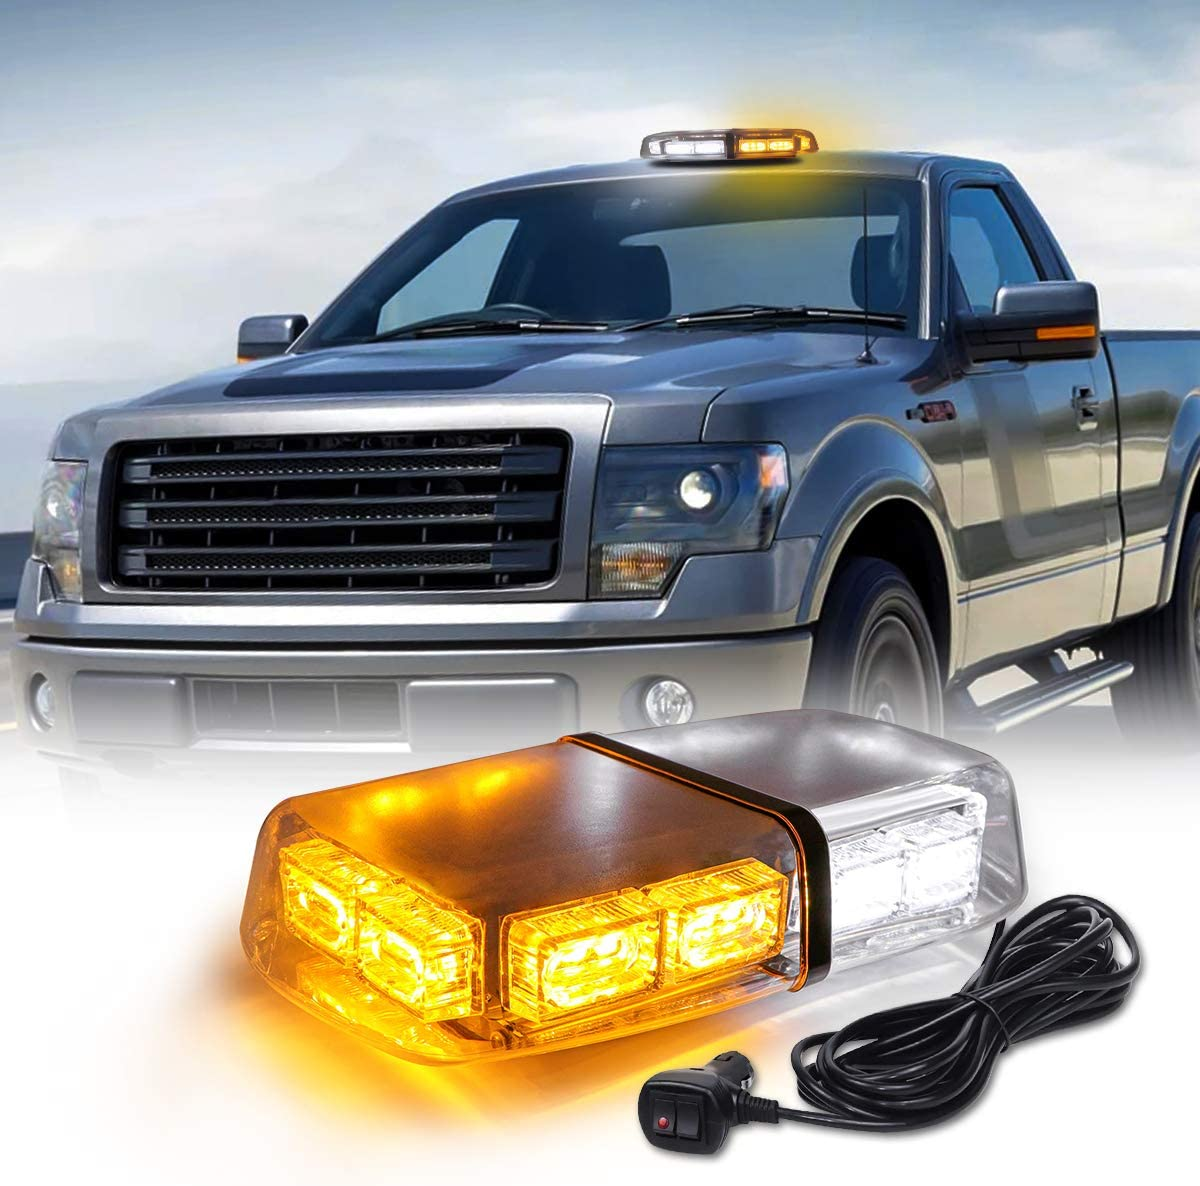 TeddyTT Amber White Safety Strobe Lights Roof Mount Strobe Mini Led Light Bar Emergency Hazard Warning Led Mini Beacon Lights Roof Plow Light with Magnetic Suction Base for Truck Construction Vehicle